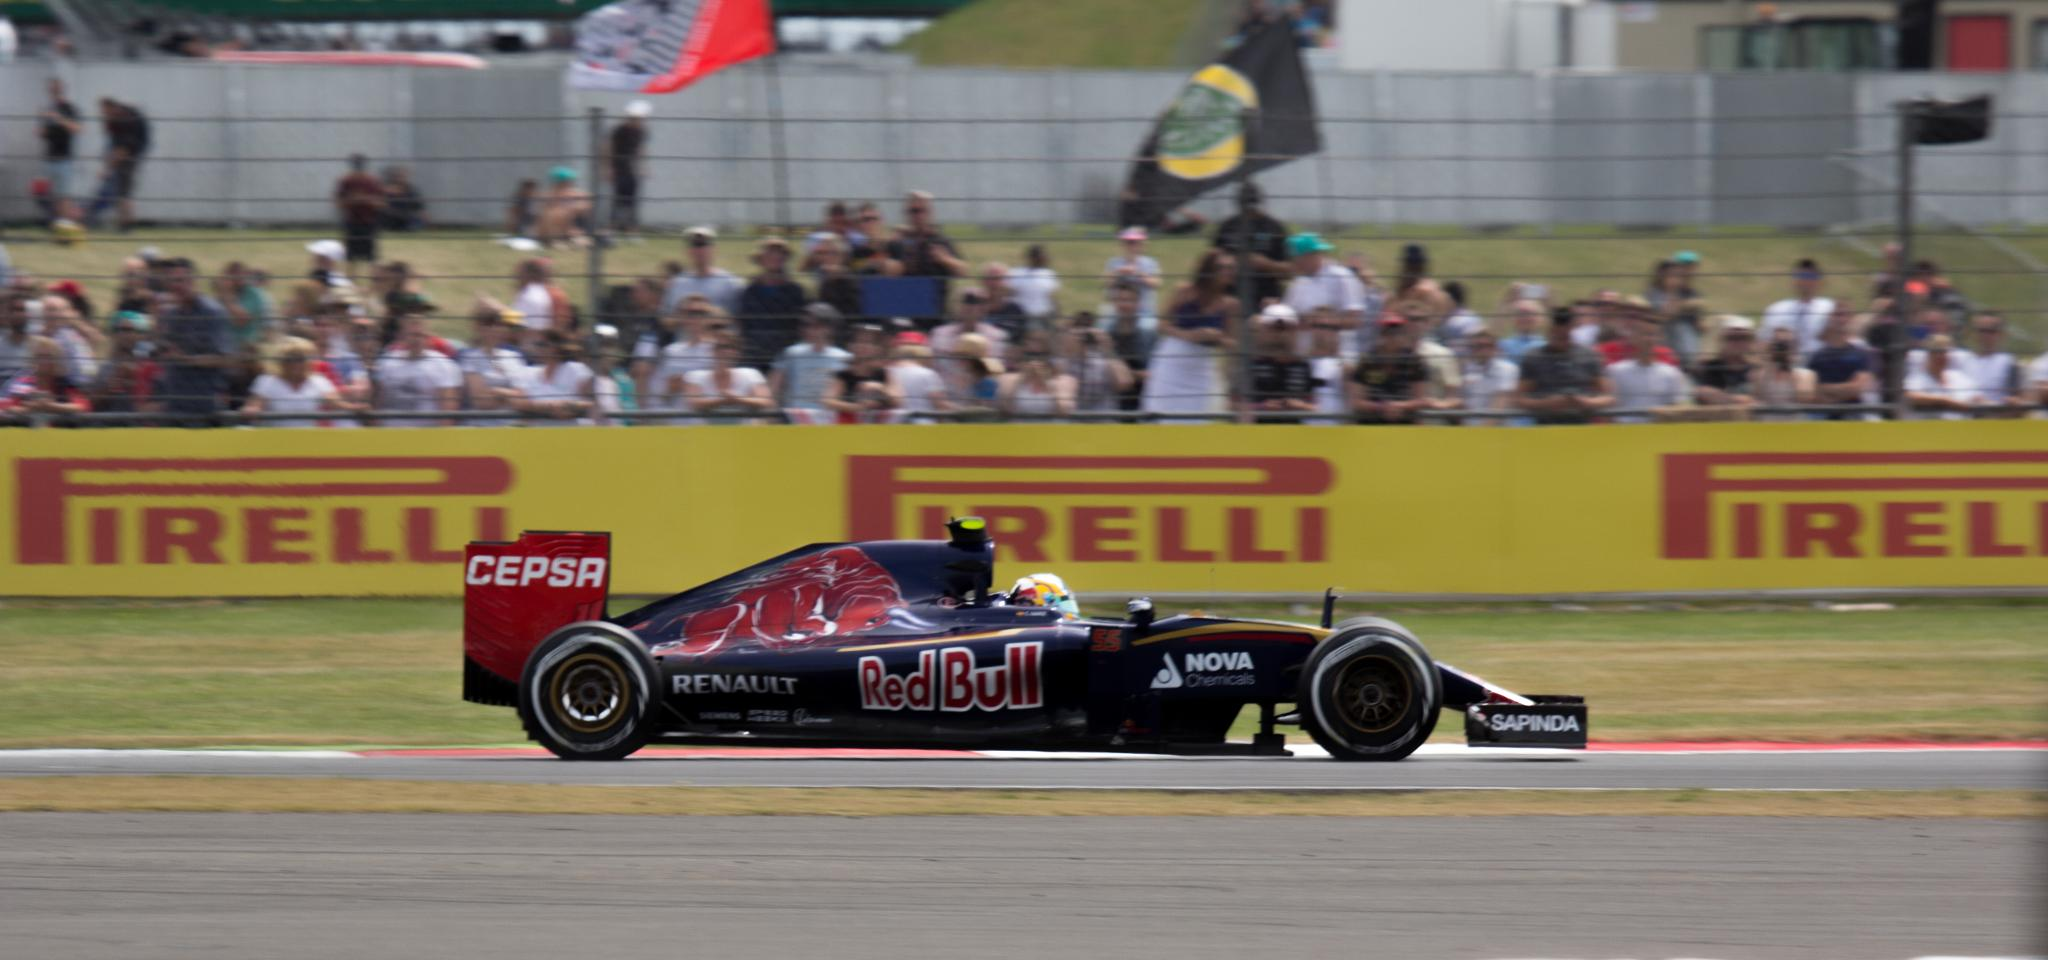 redbull at silverstone  by eddie.powell.9809